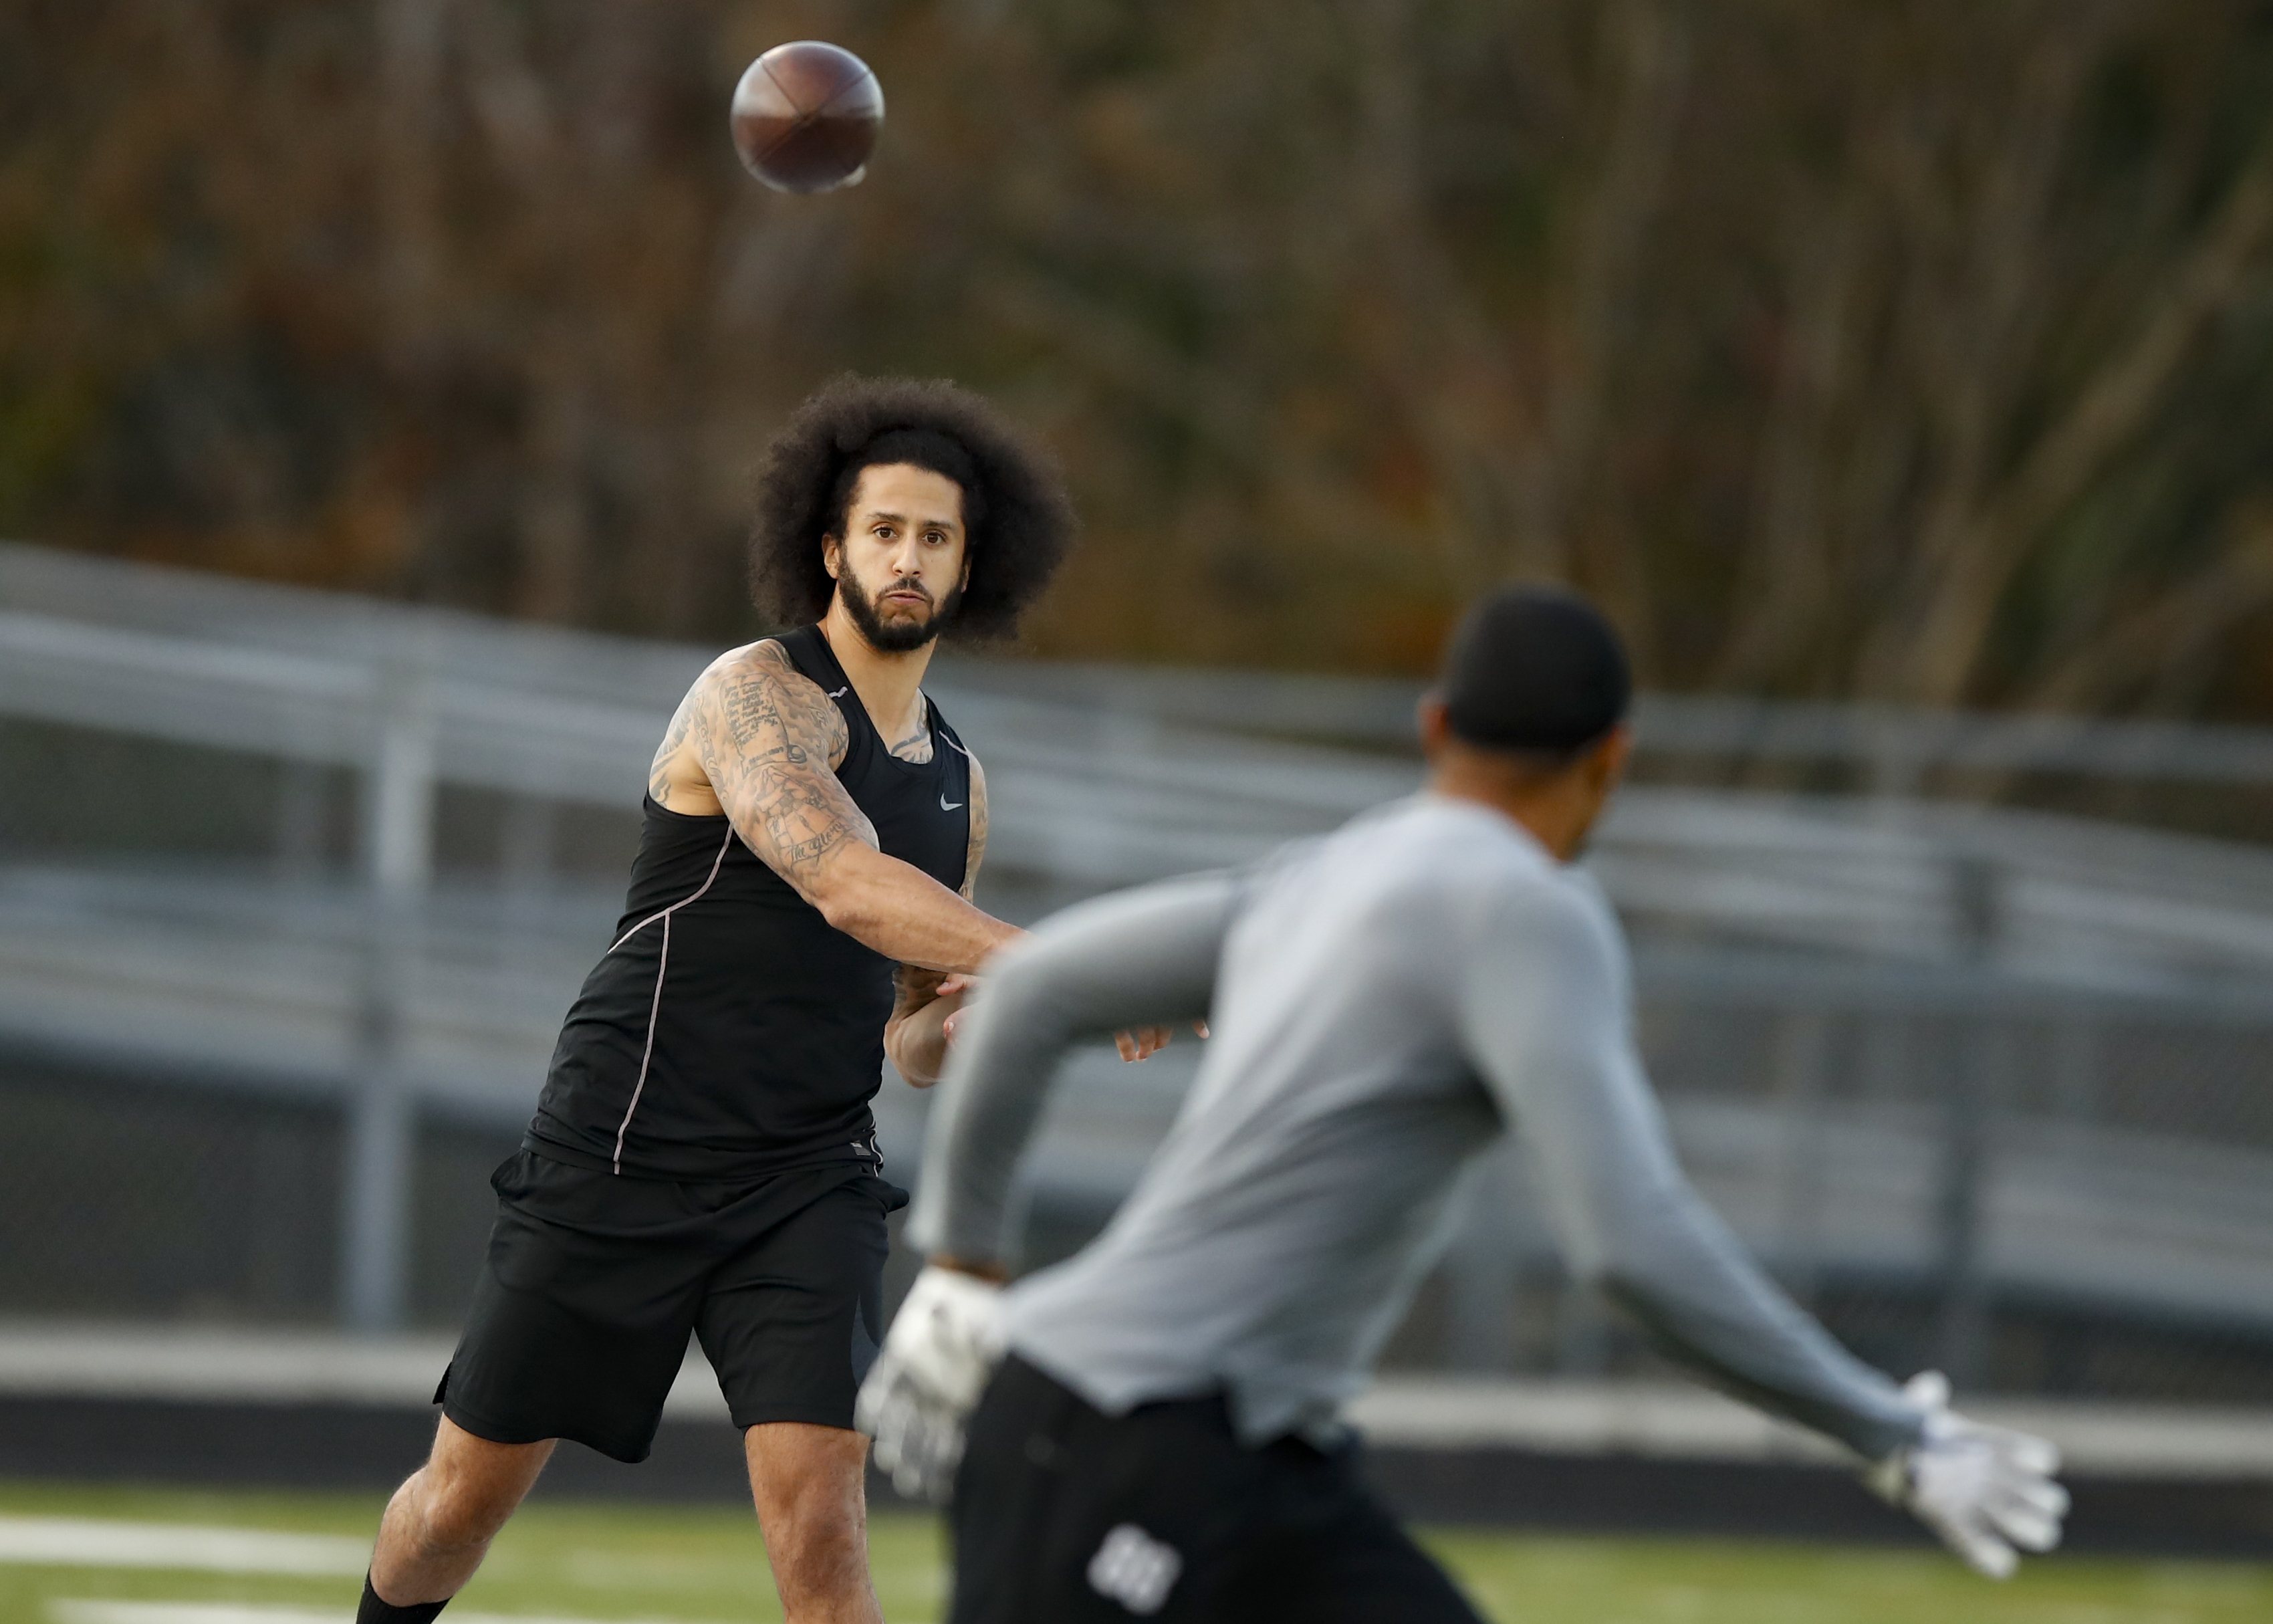 Colin Kaepernick's 'Colin in Black and White' Netflix Trailer, Release Date Revealed